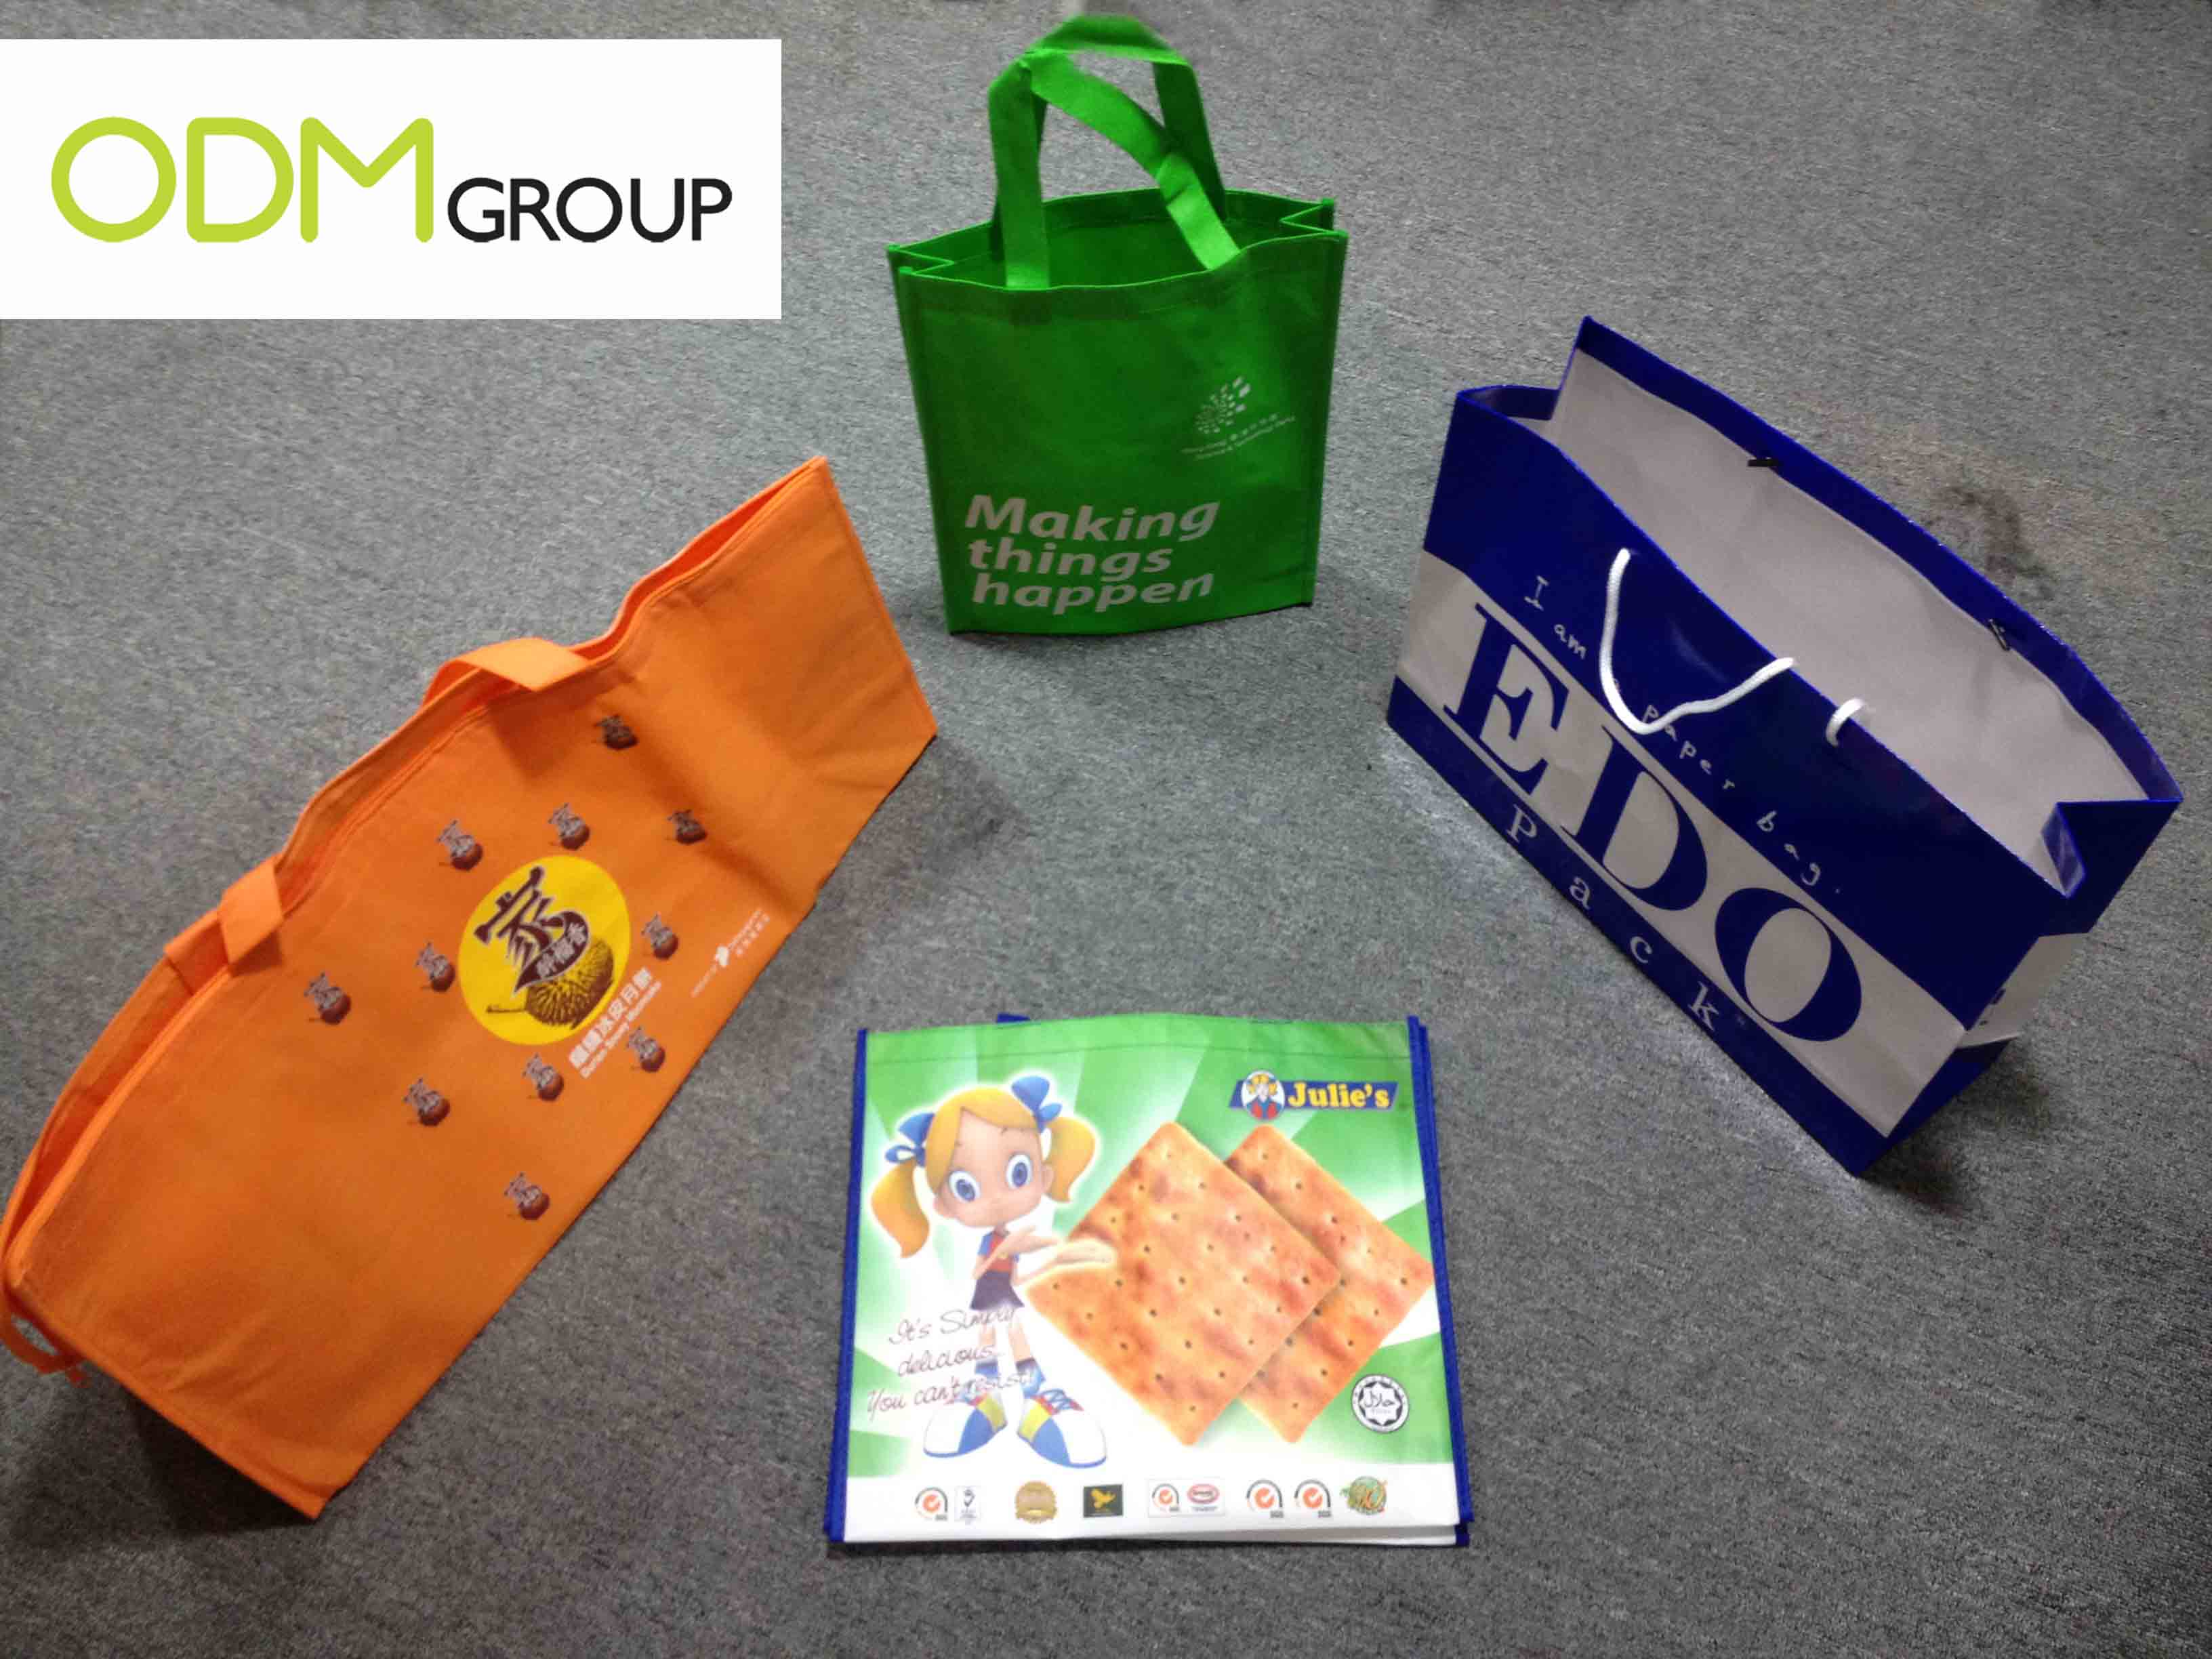 Promotional Product Hong Kong Bags from HKTDC Food Expo Promotional Product Hong Kong   Bags from HKTDC Food Expo